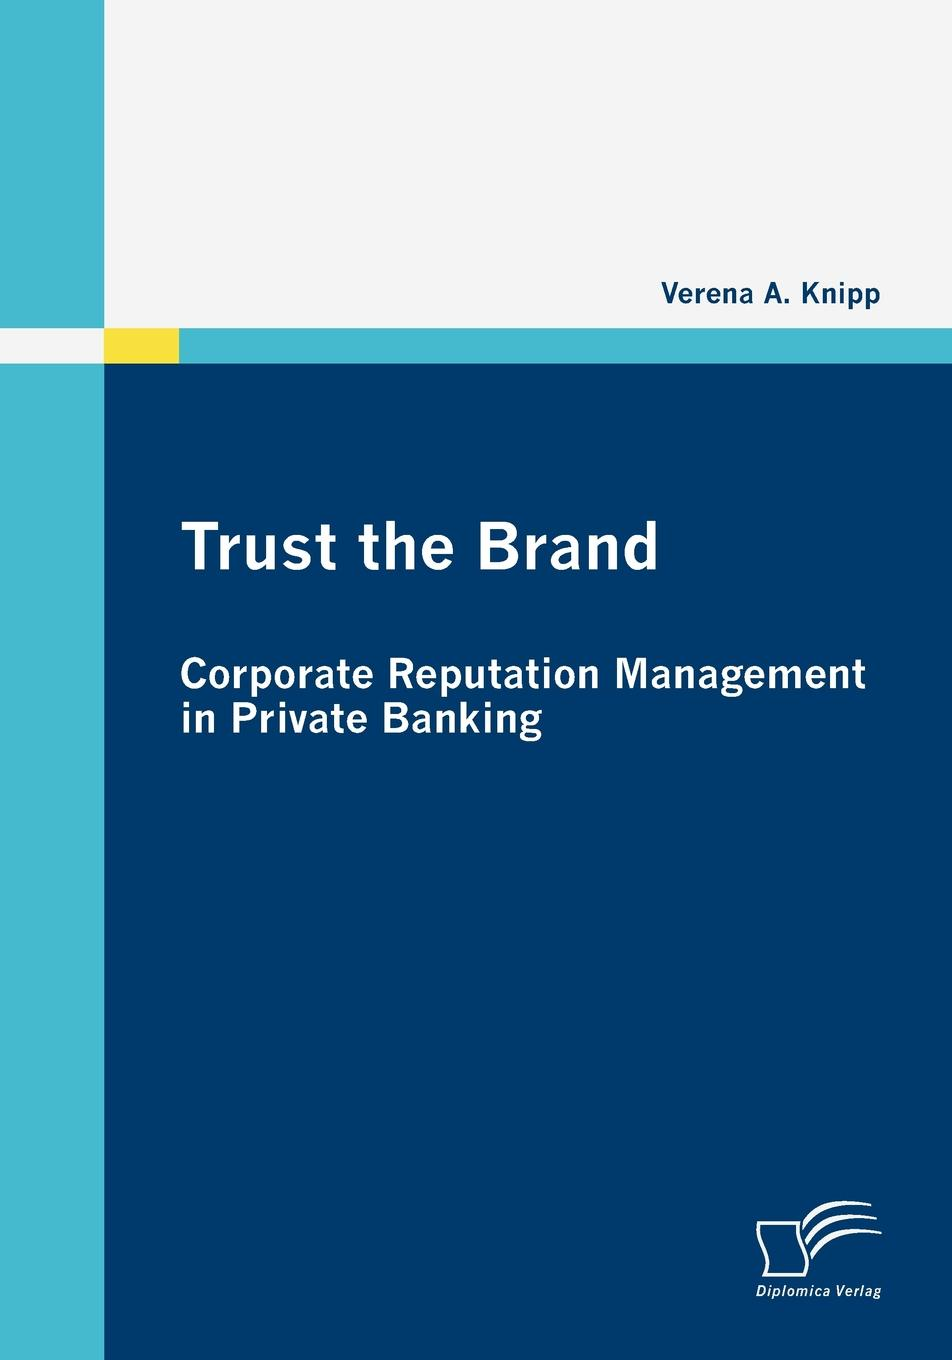 цены Verena A. Knipp Trust the Brand - Corporate Reputation Management in Private Banking